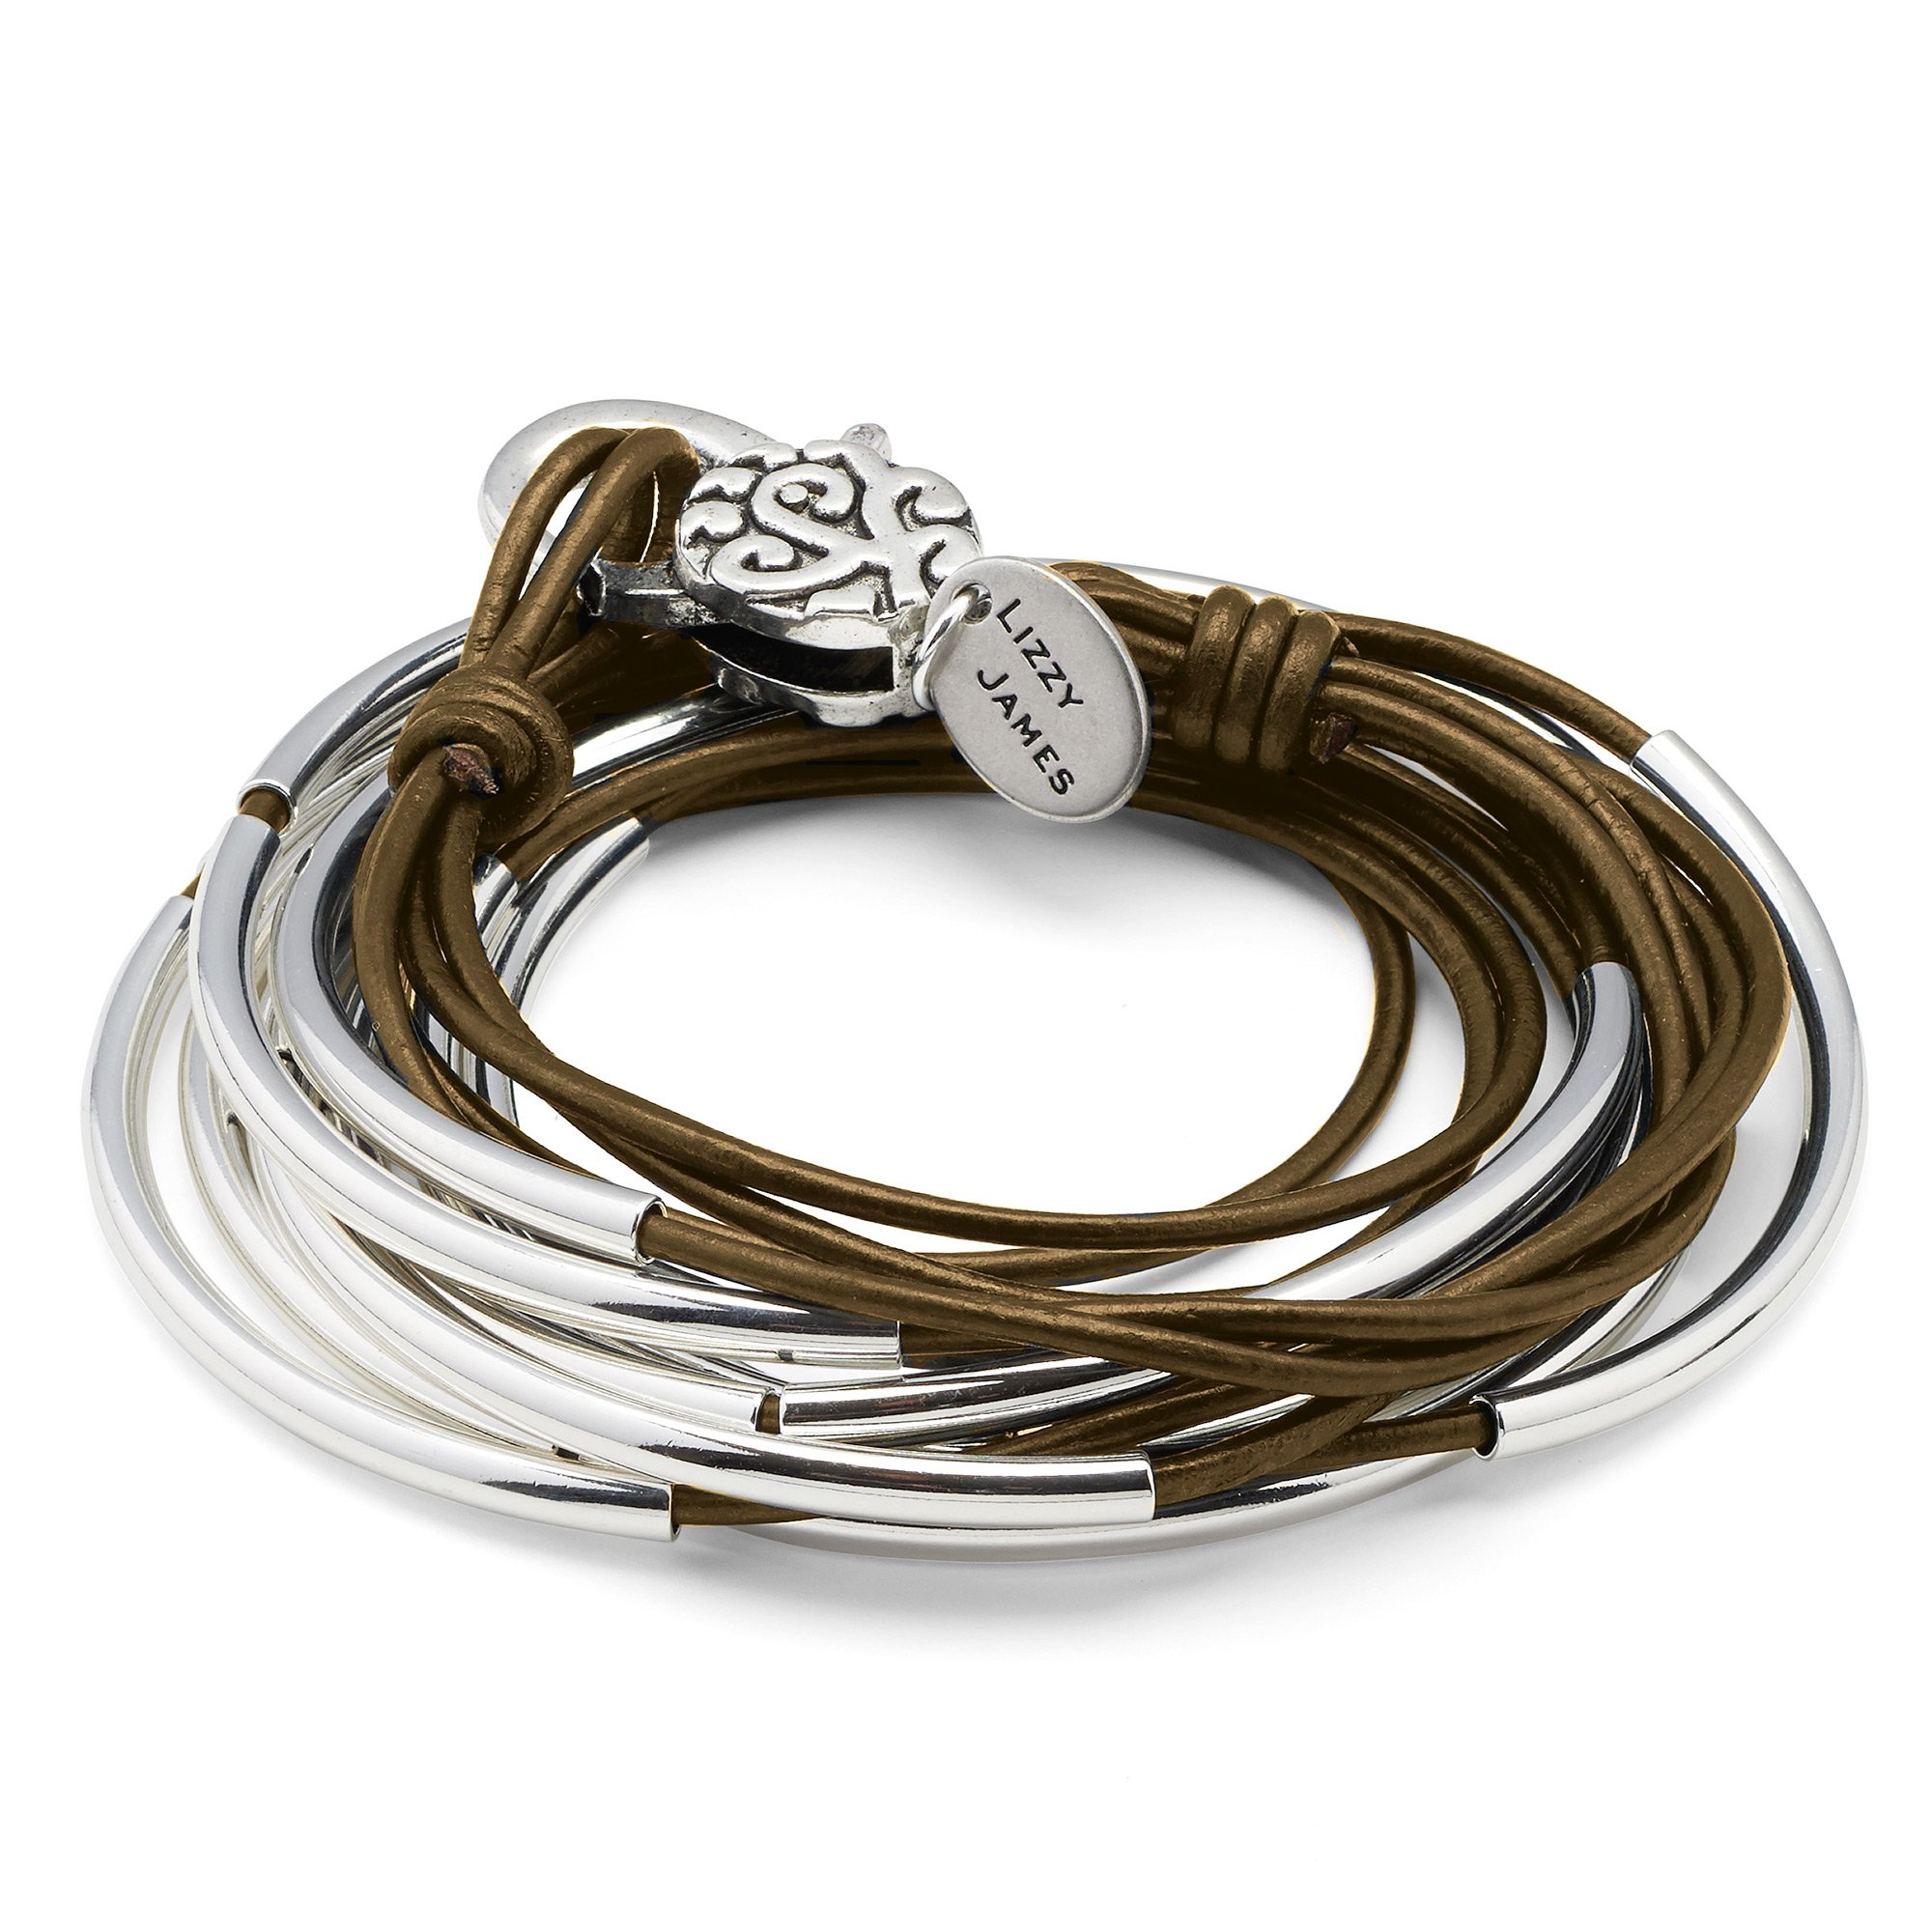 Lizzy Classic Metallic Bronze Leather and Silver Wrap Bracelet Necklace (MEDIUM) by Lizzy James